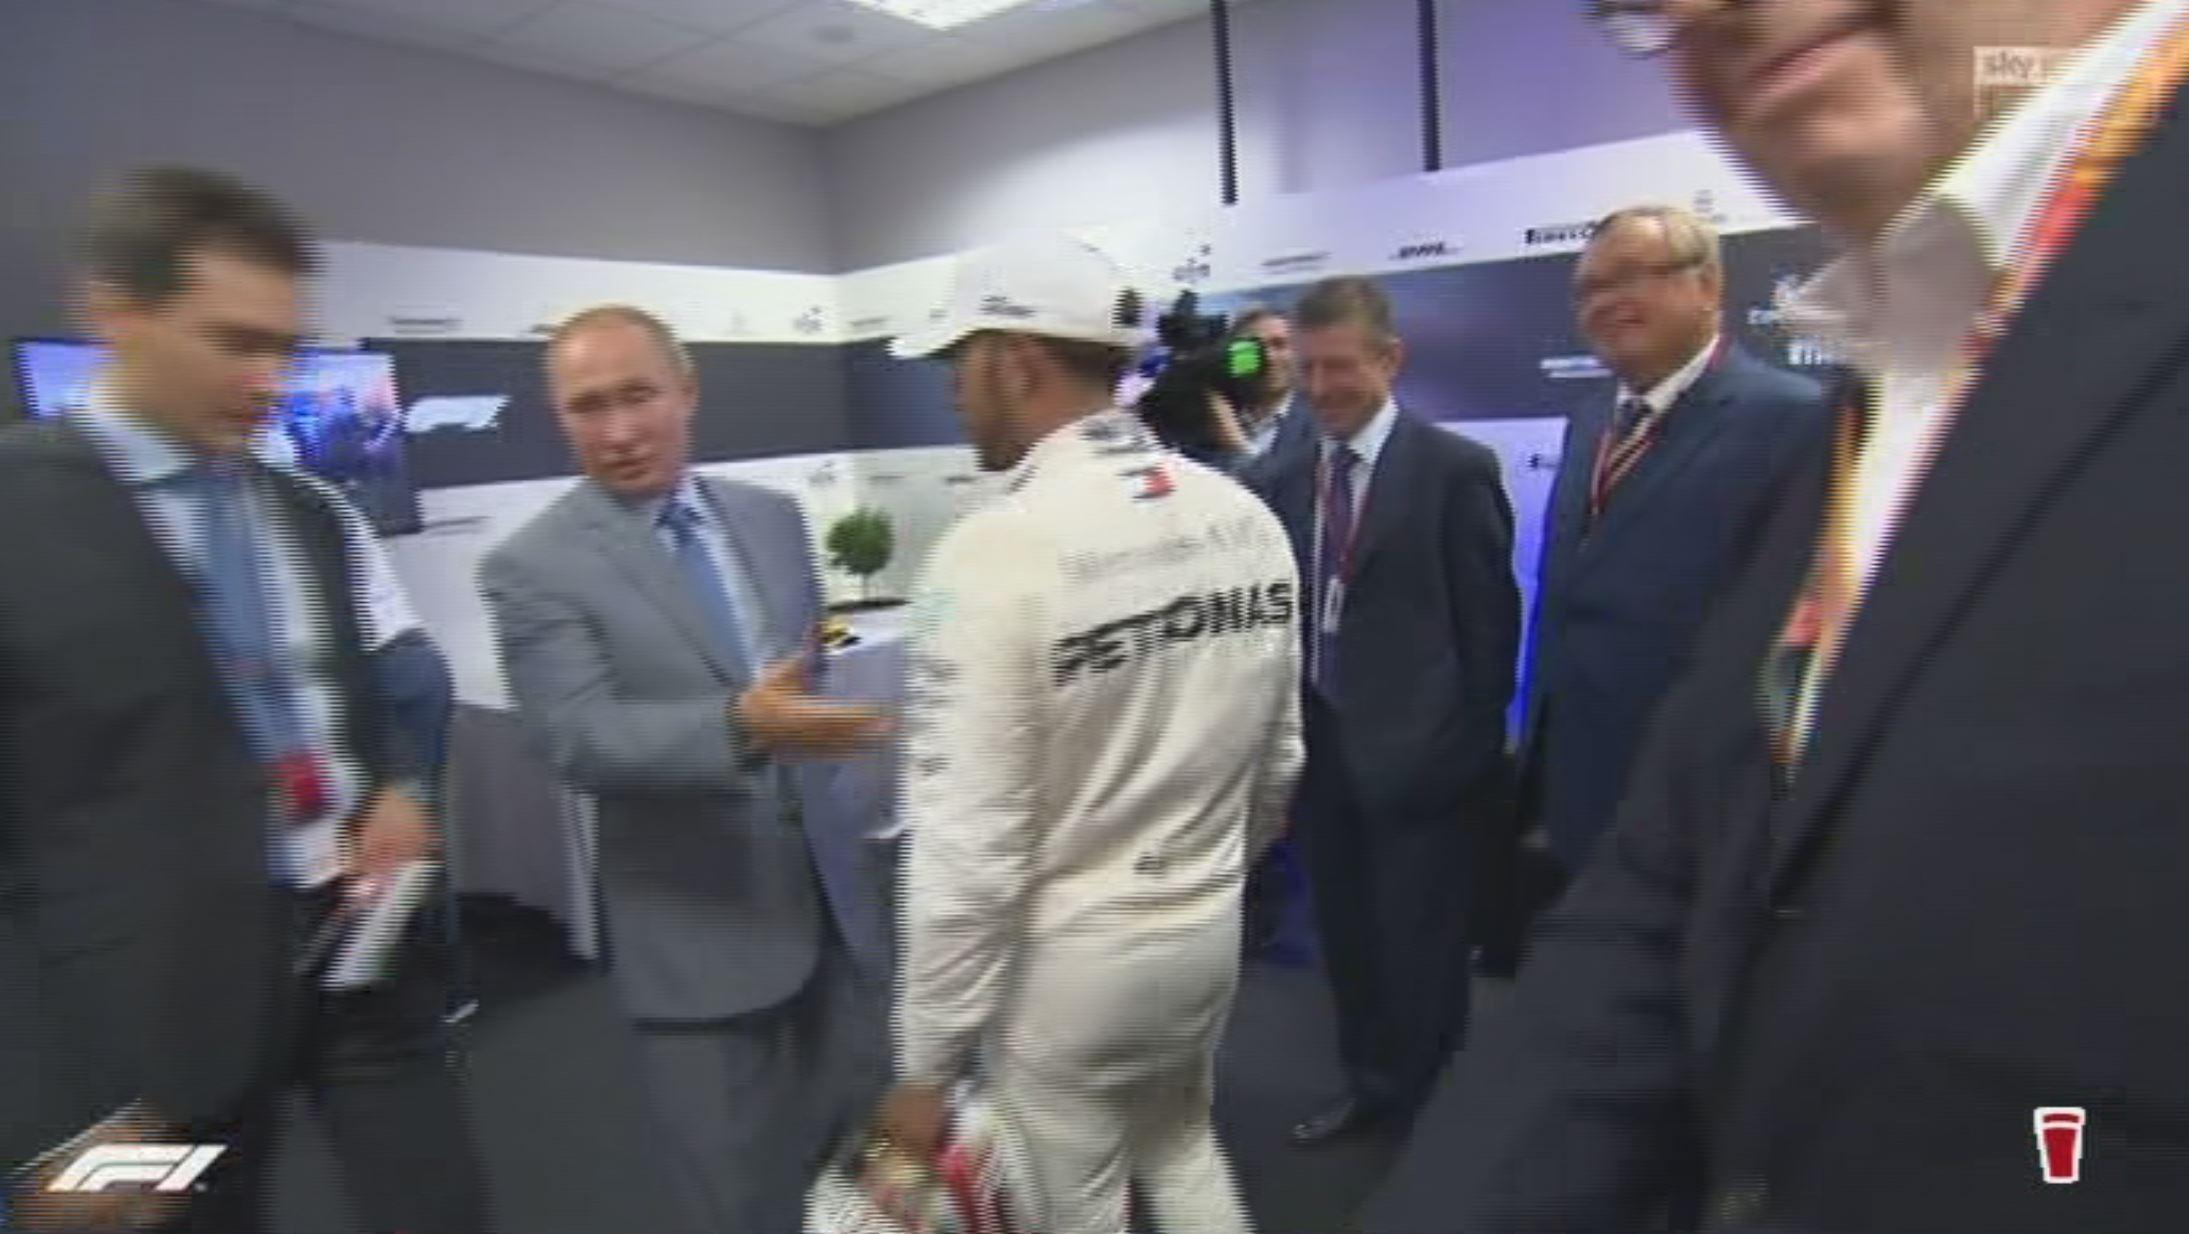 Vladimir Putin instructs his interpreter to warn Lewis Hamilton to forget any champagne antics